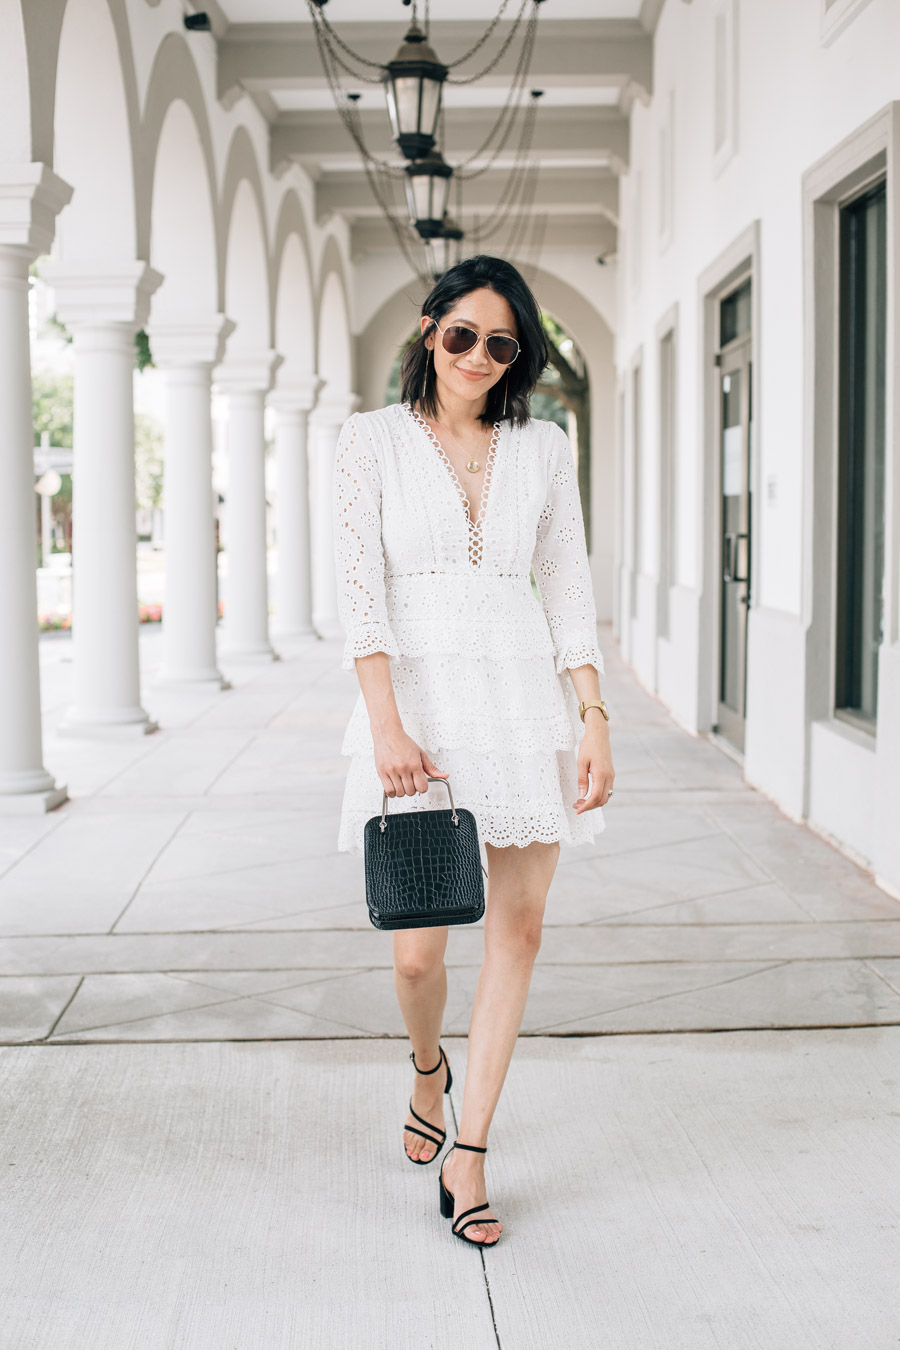 Lilly Beltran wearing a white eyelet mini dress + talks about how quitting dairy improved her health.